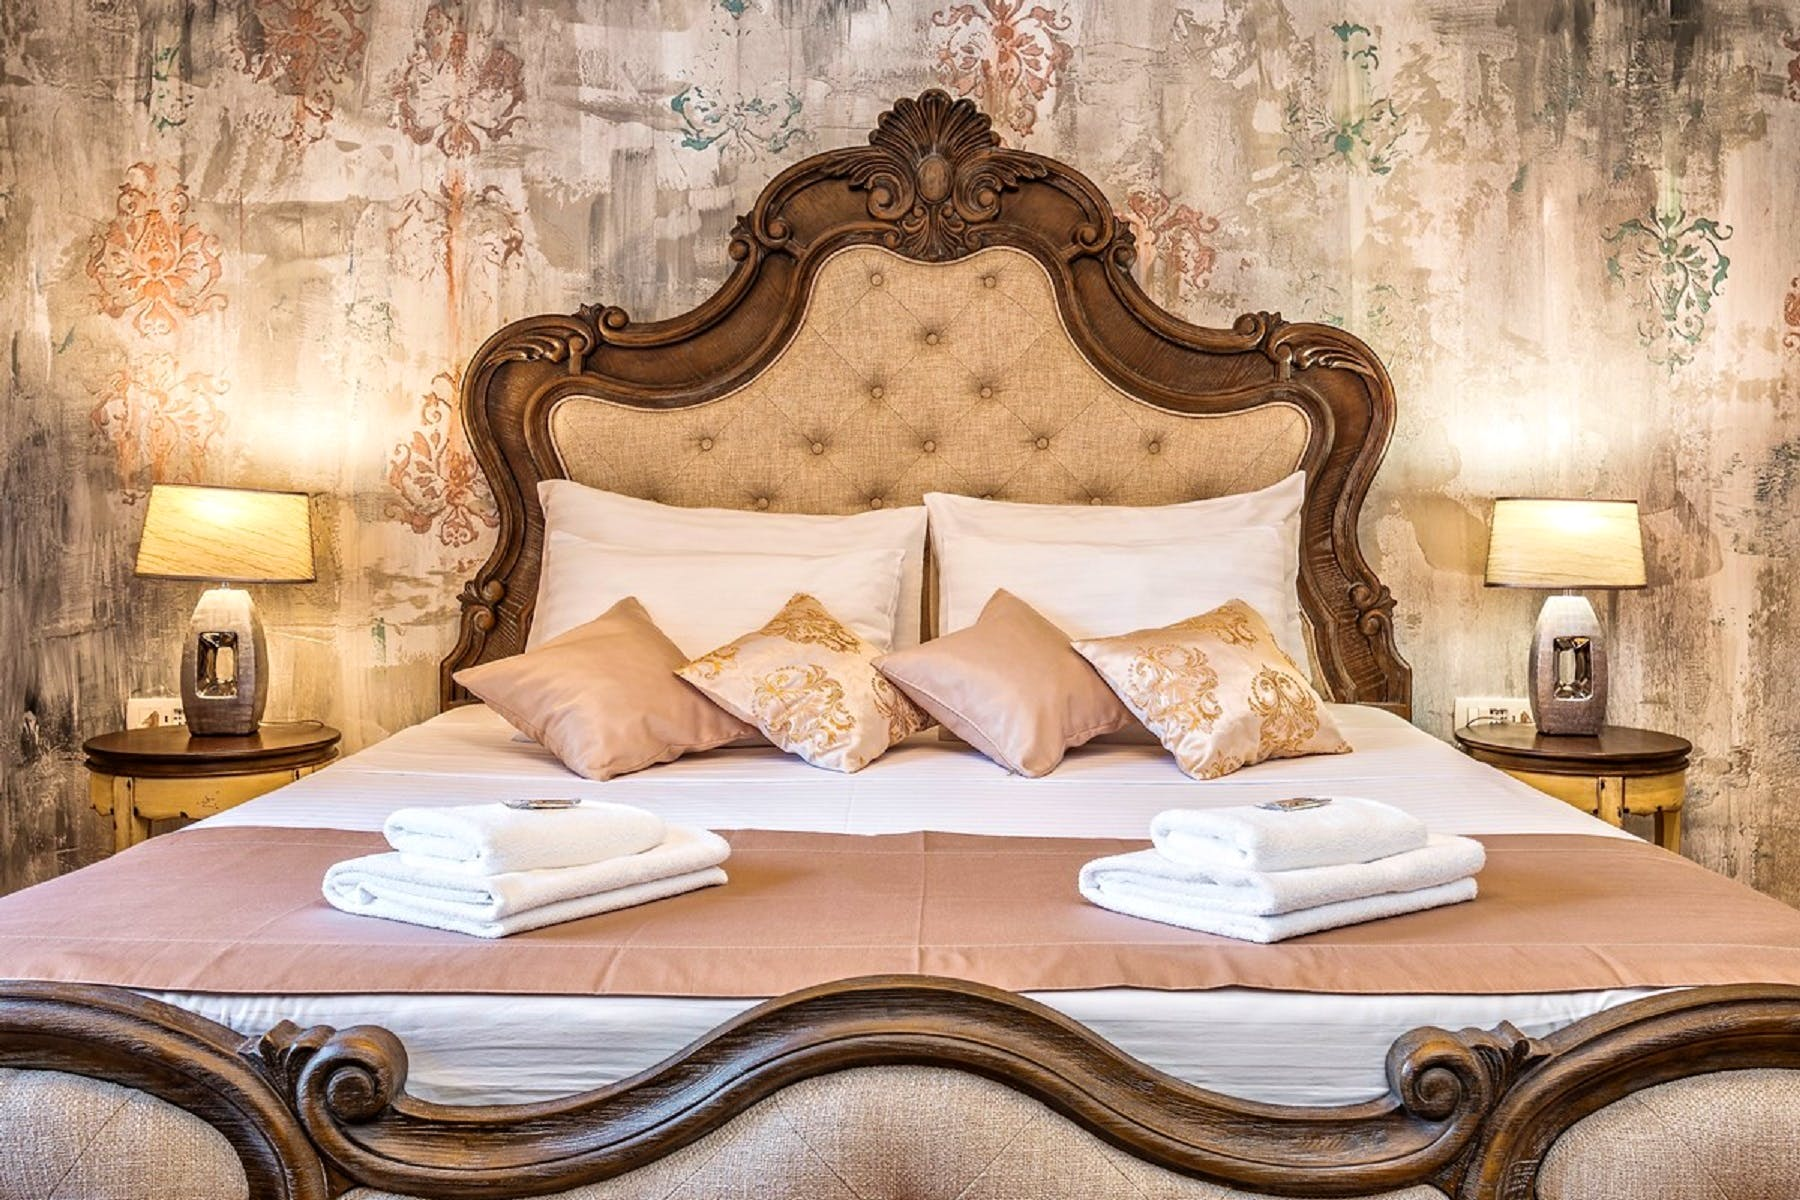 A true royal bed for a good night's sleep